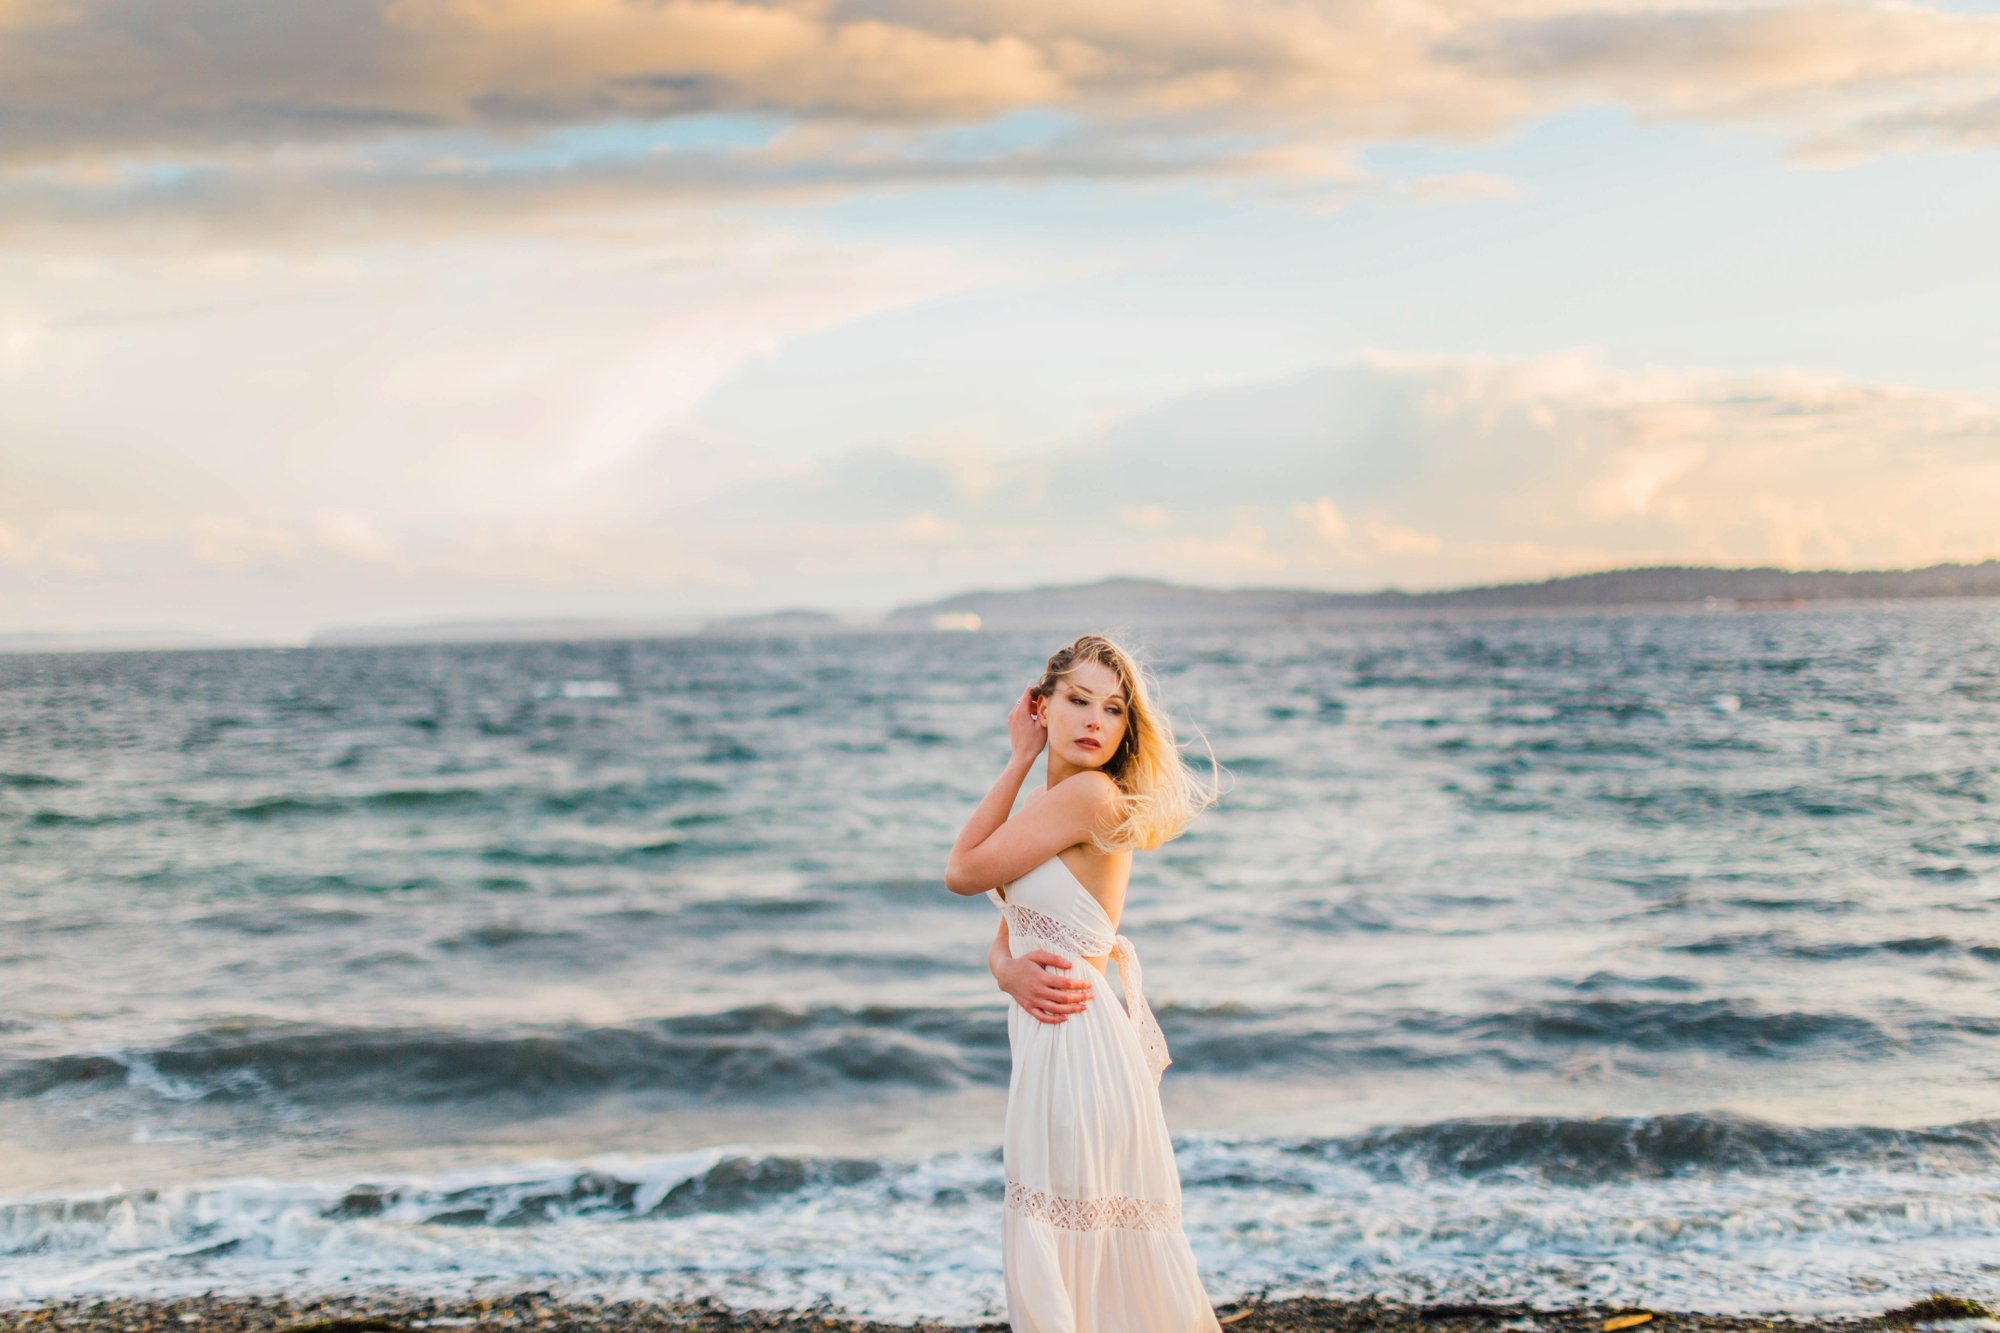 Seattle Destination Wedding, Seattle Bridal Photography , Seattle Bridal inspiration, Seattle Wedding Photography, Seattle Bridal Session, Whimsical Wedding Photography. Discovery Park Seattle, Leanne Rose Photography,